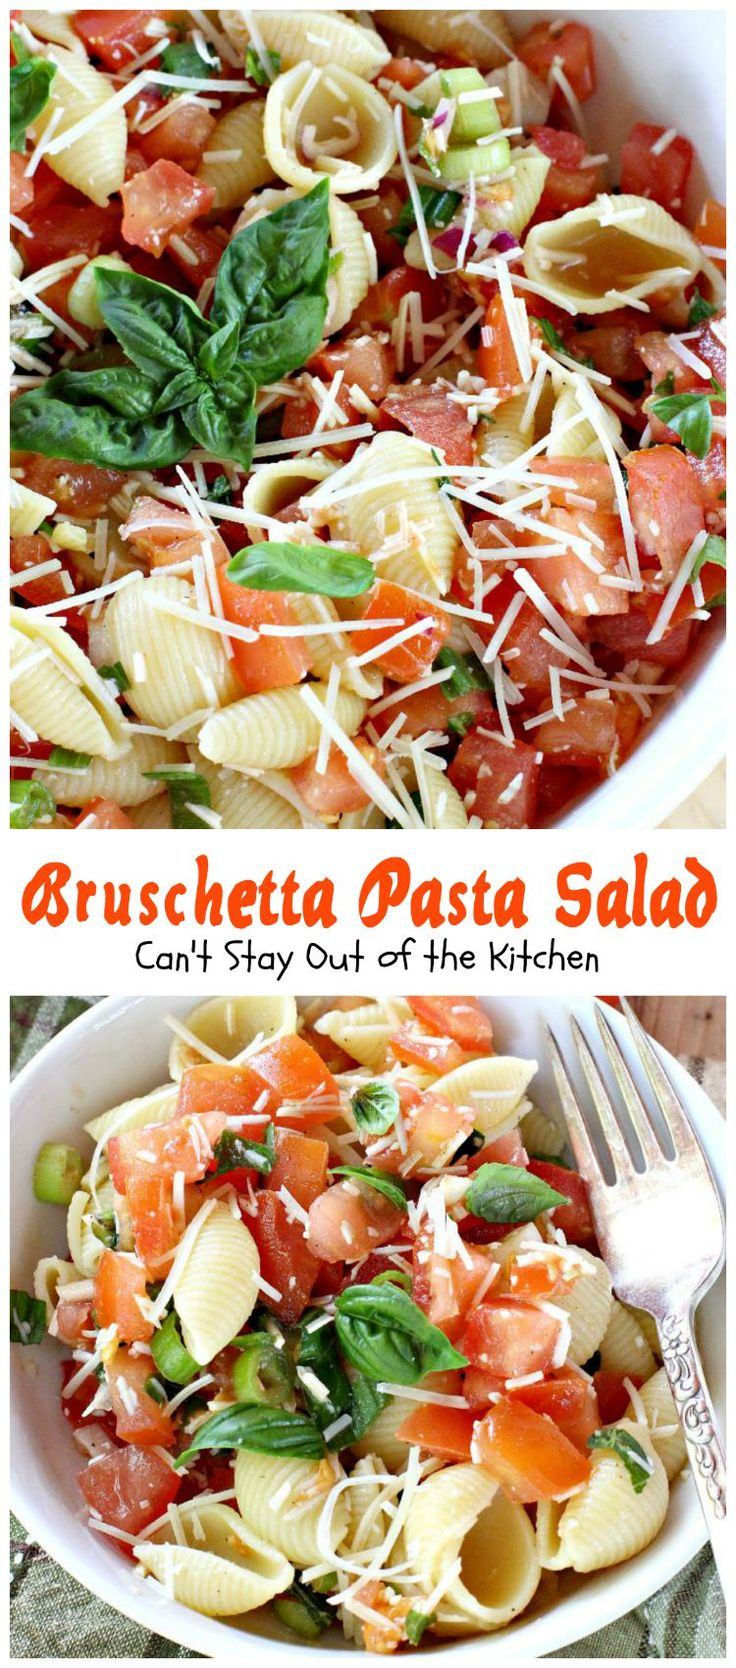 women clothing online Bruschetta Pasta Salad  Can't Stay Out of the Kitchen  this amazing #salad combines the best of #bruschetta with #pasta for one of the most spectacular #pastasalad recipes ever! #tomatoes